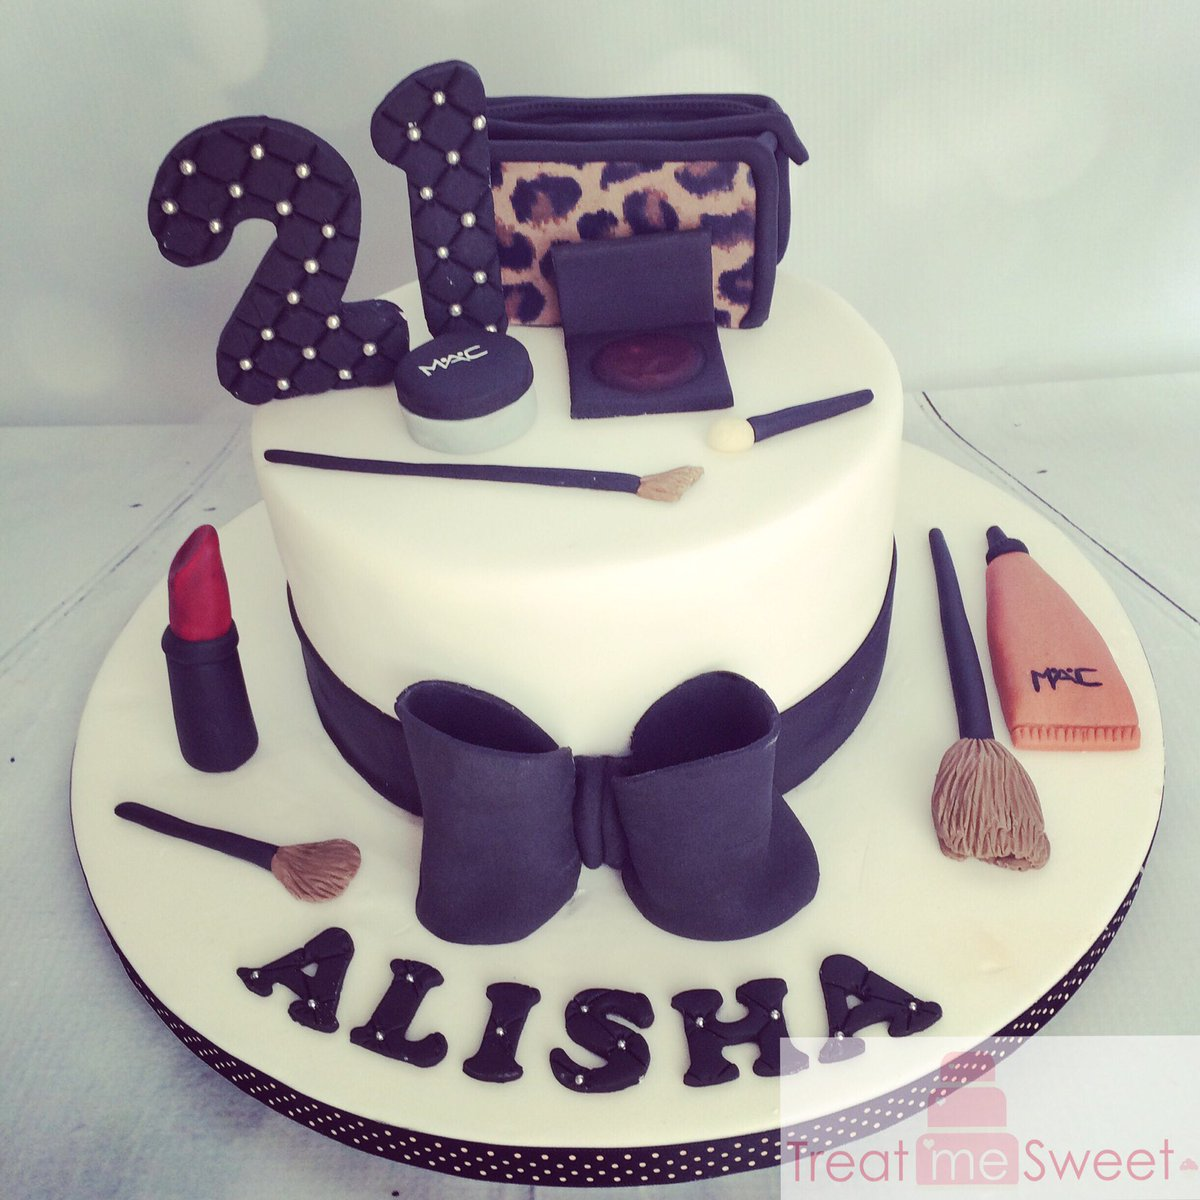 Awesome Treat Me Sweet On Twitter Make Up Cake With Edible Mac Make Up Personalised Birthday Cards Sponlily Jamesorg